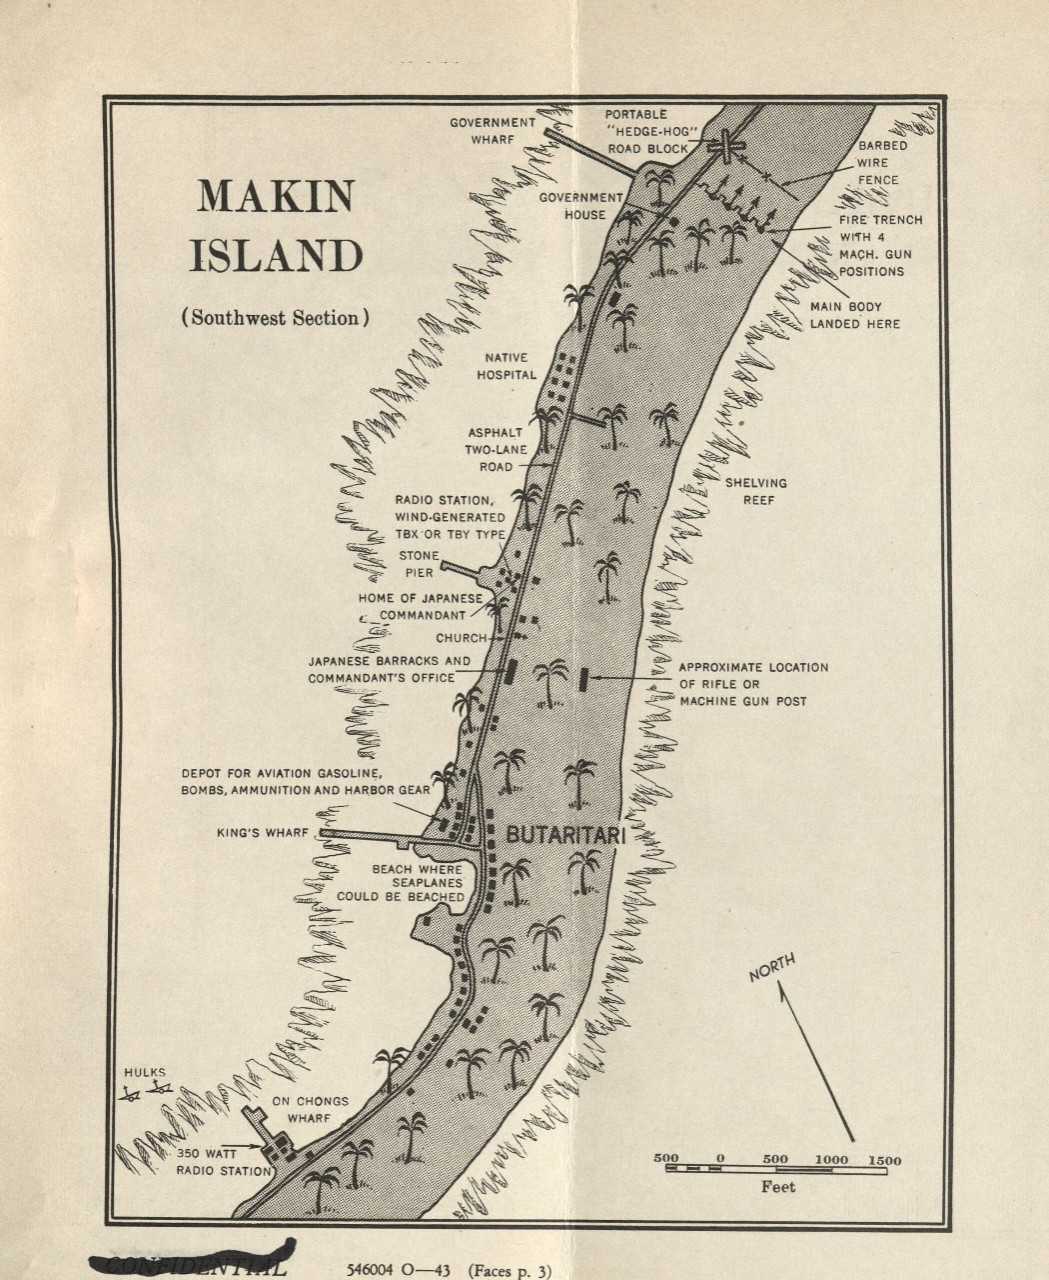 <p>Makin Island Southwest Section&nbsp;</p>